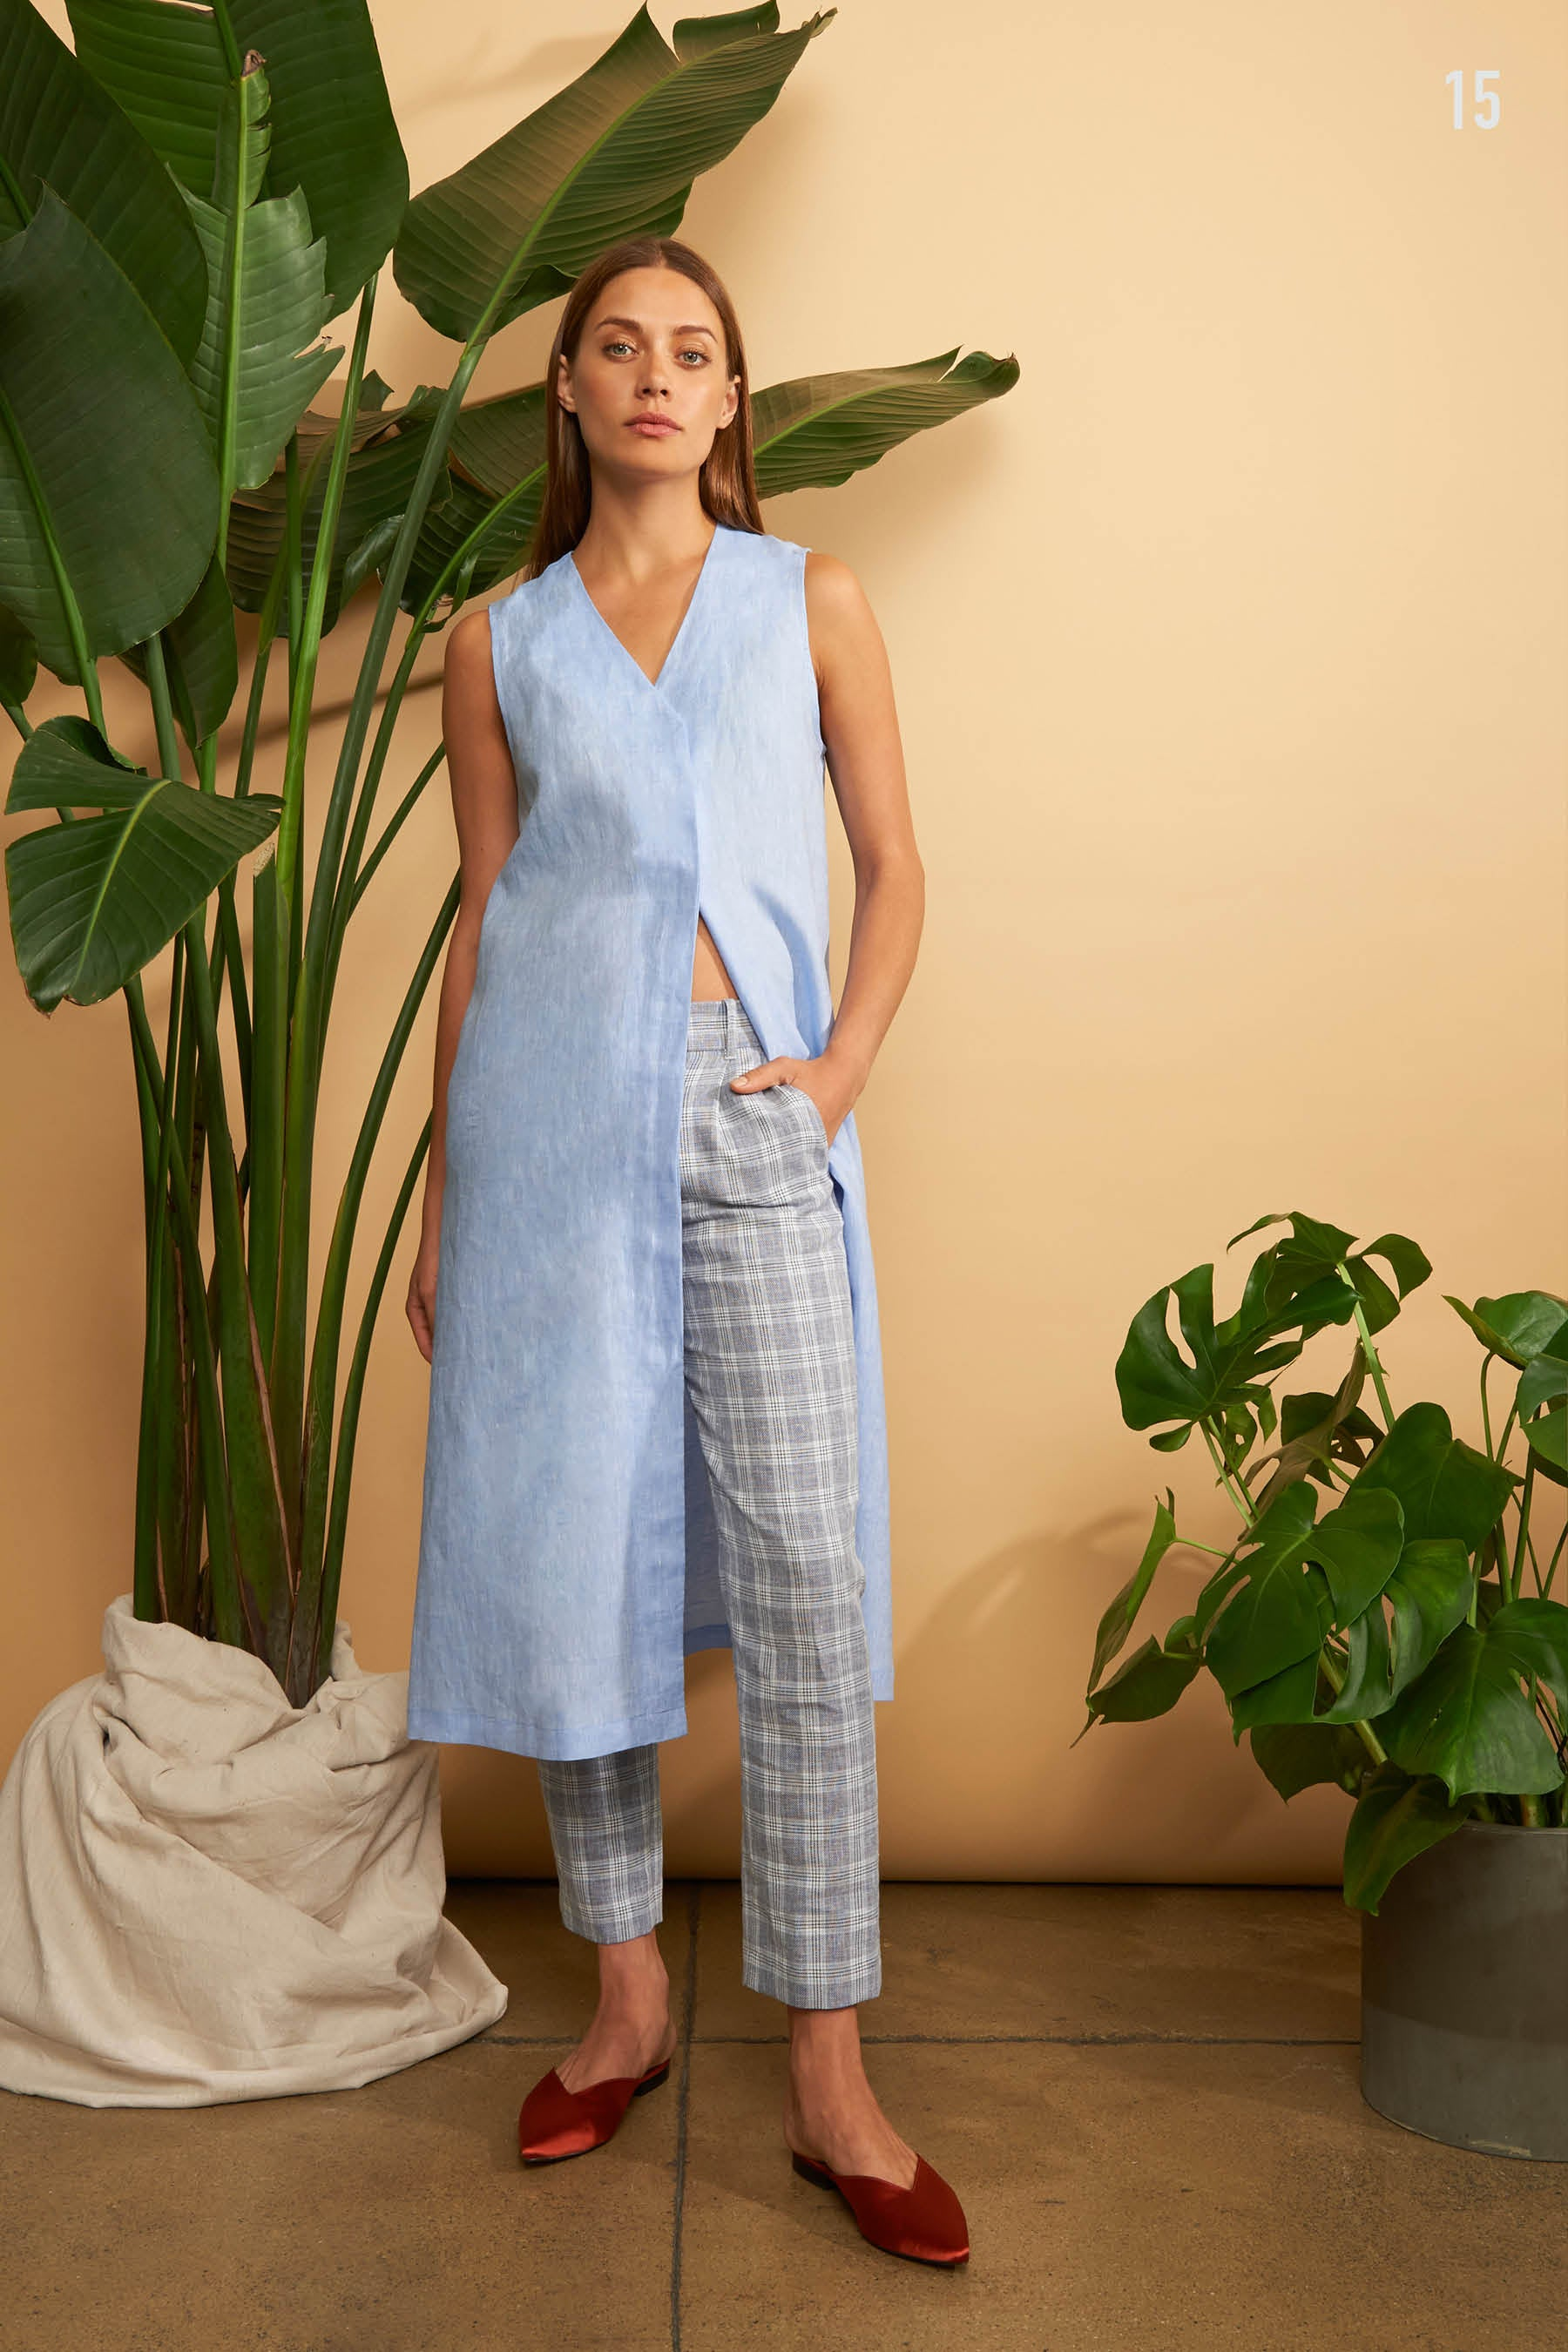 Kal Rieman Spring 2018 Lookbook Look 15